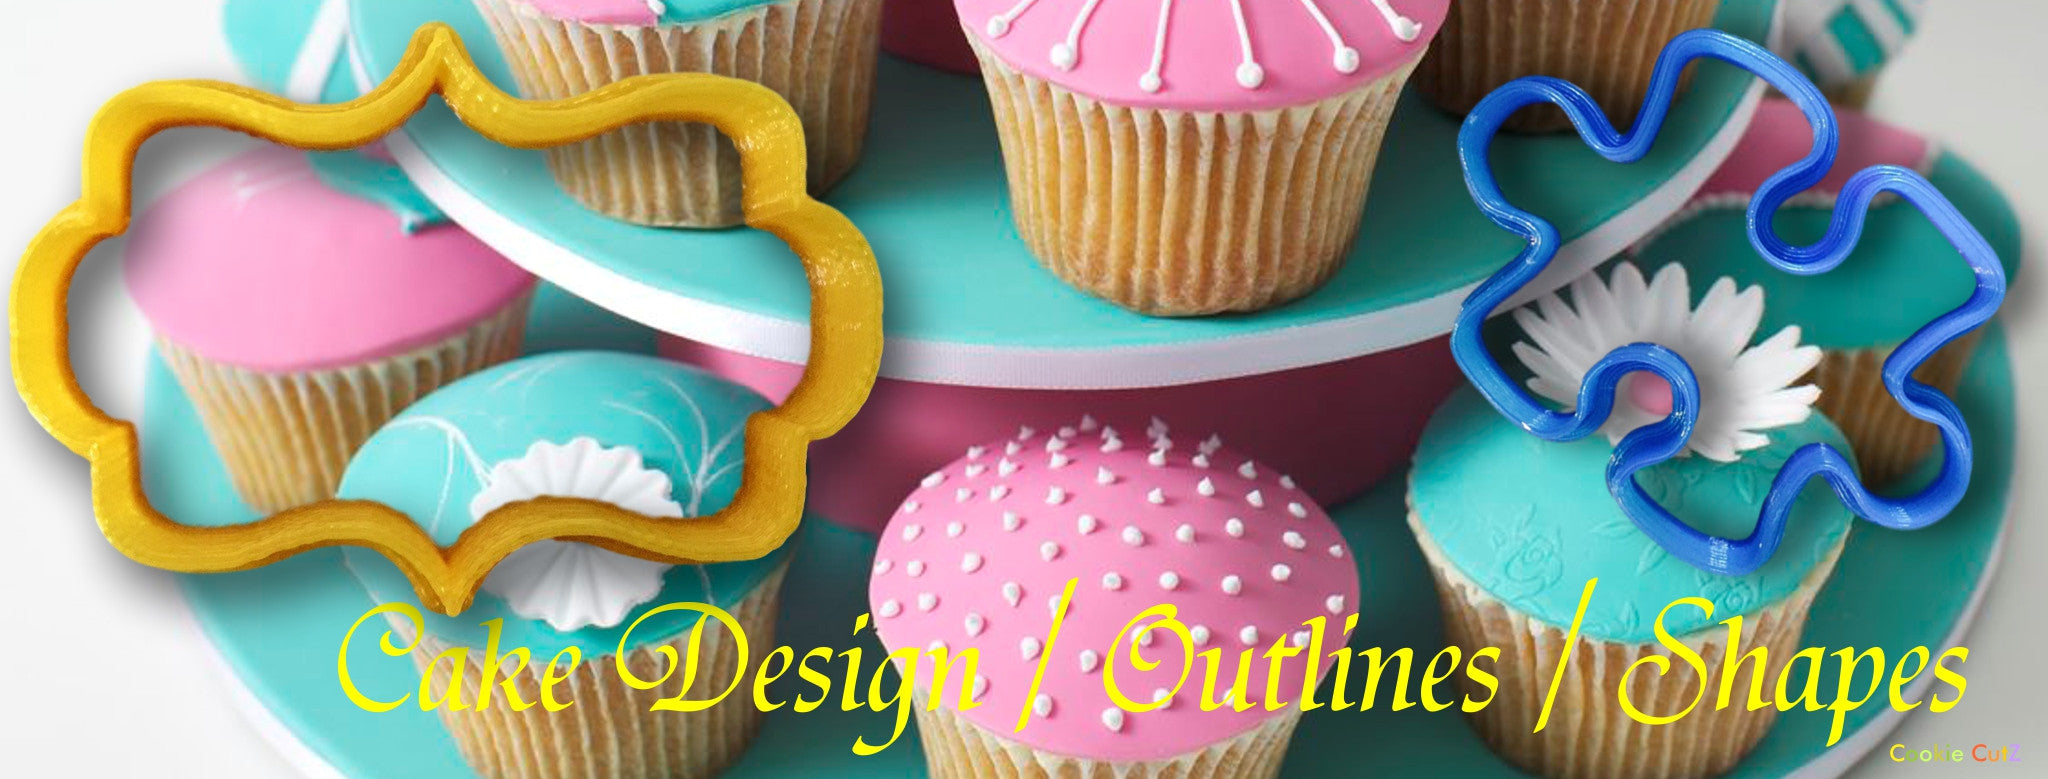 Cake Design & Shapes